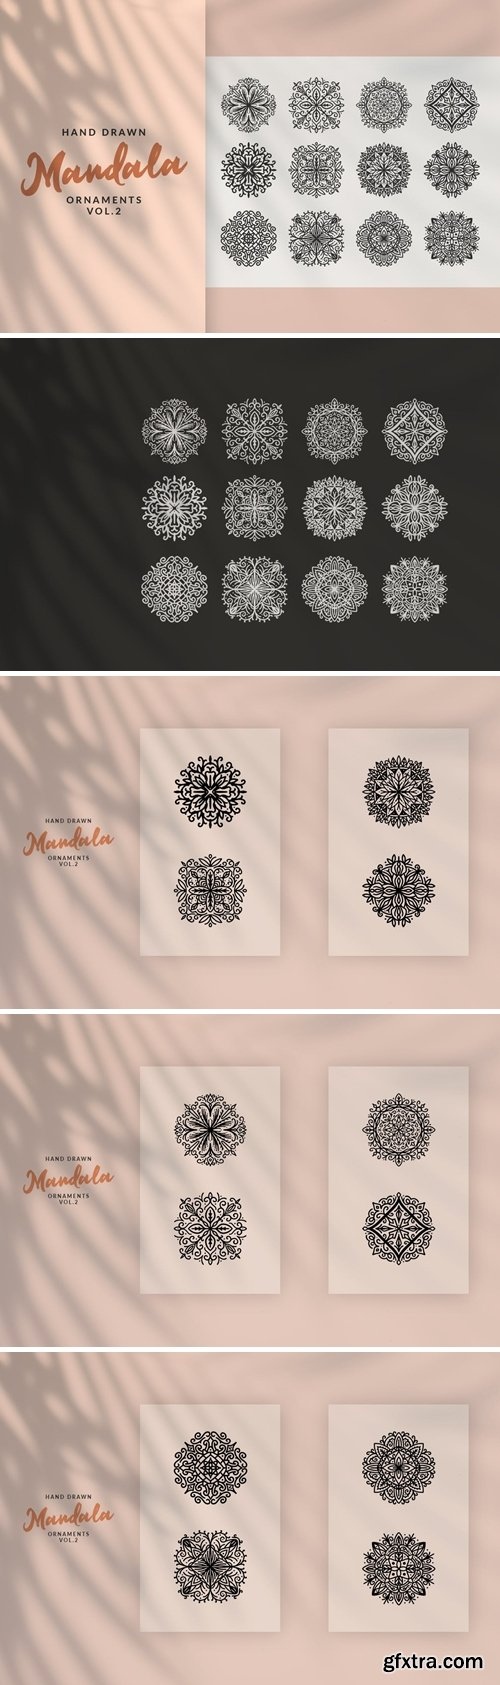 Hand Drawn Mandala Ornaments Vol.2